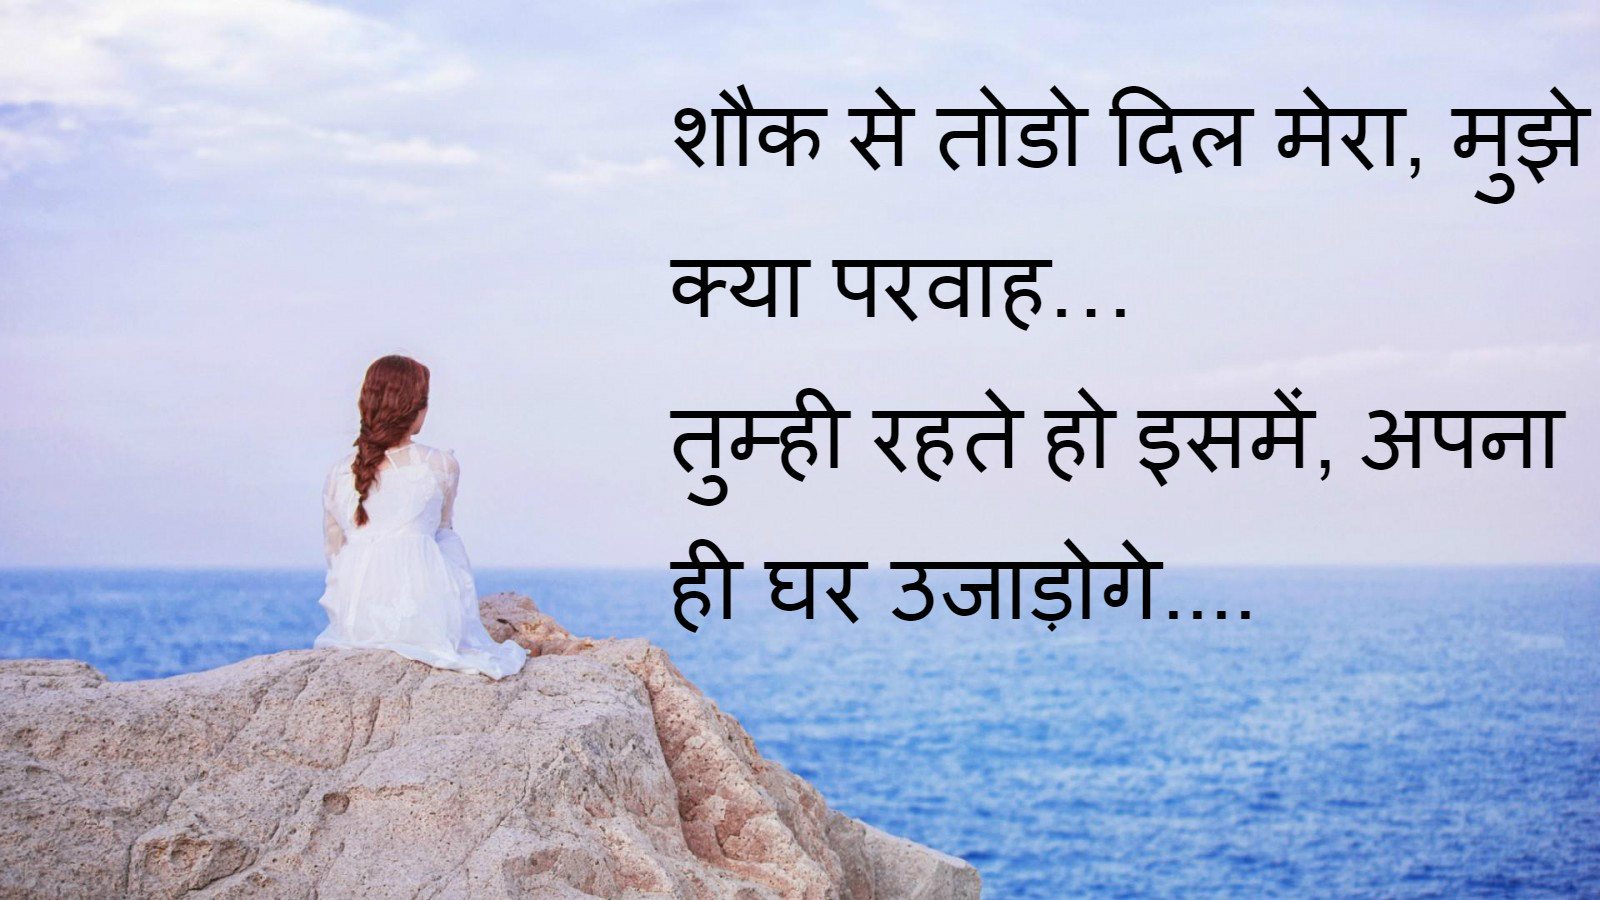 ... Lines Shayari Sms, 2 Lines Shayari Wishes, Two Lines Quotes, 2 Lines